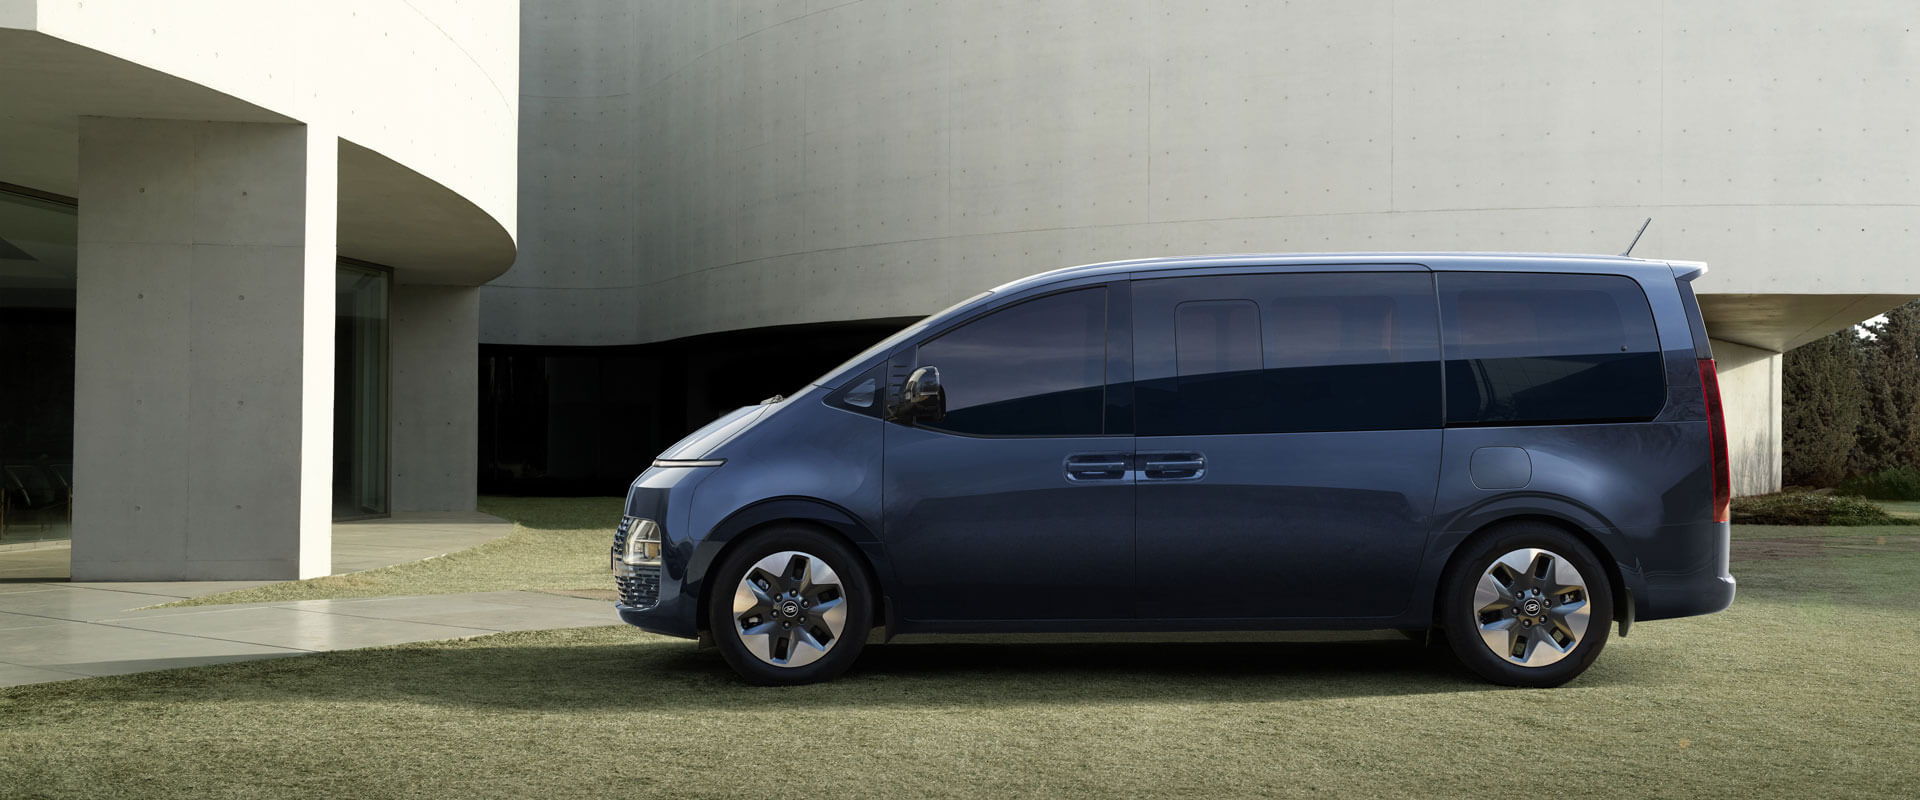 Get in early with Hyundai Pre-order. Image